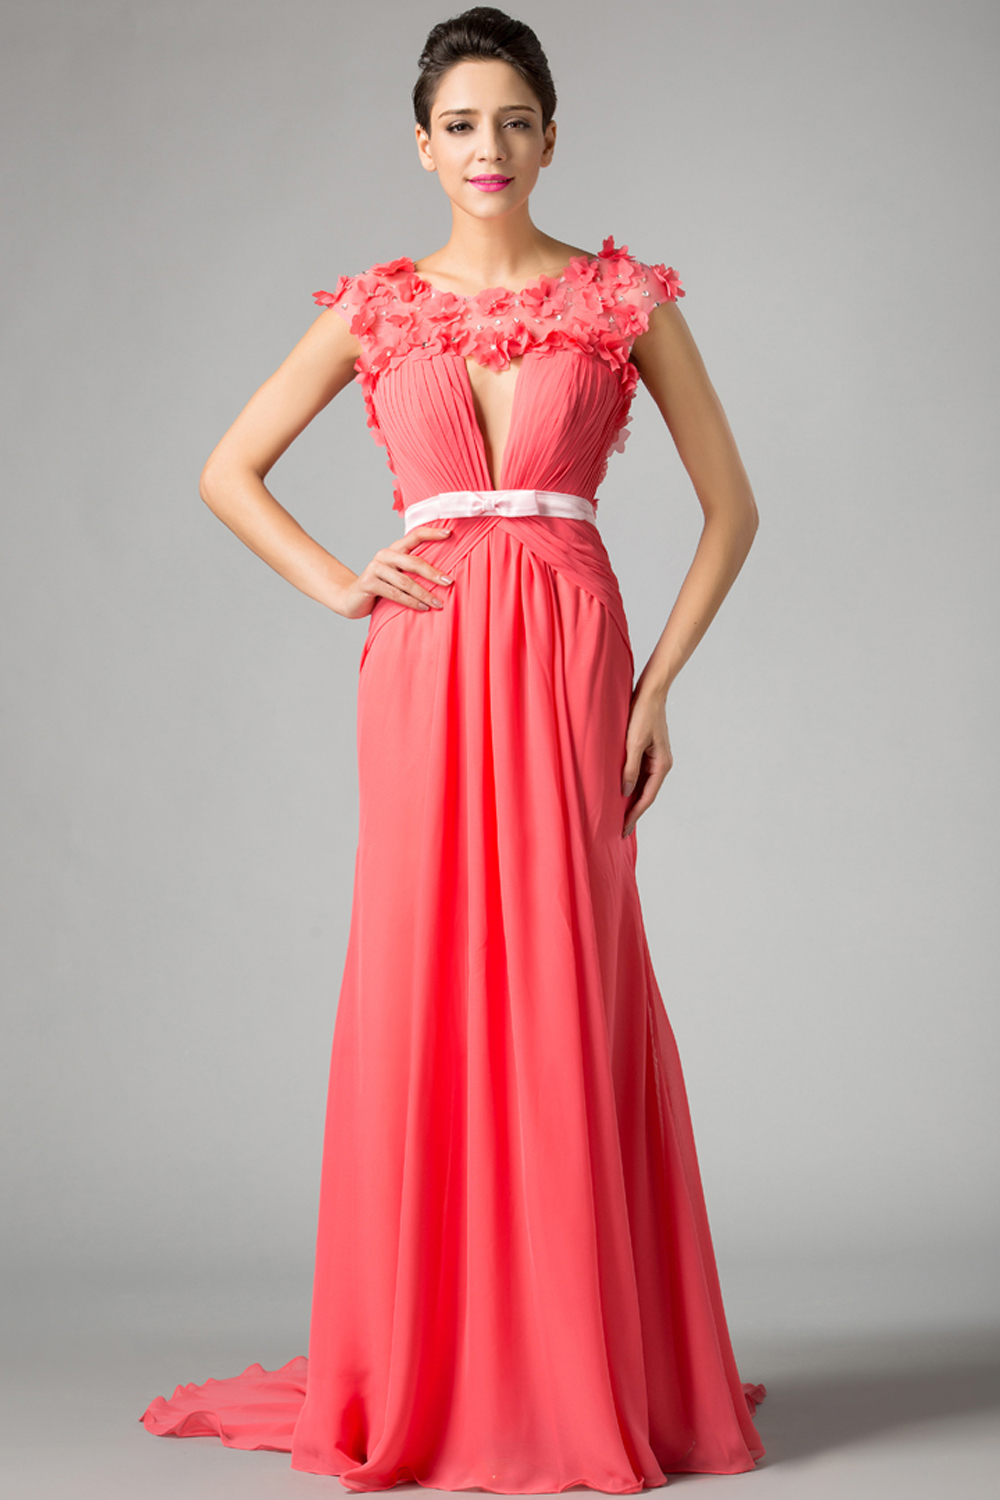 A-Line/Princess Jewel Neck Floor Length Chiffon Prom Dress with Flowers